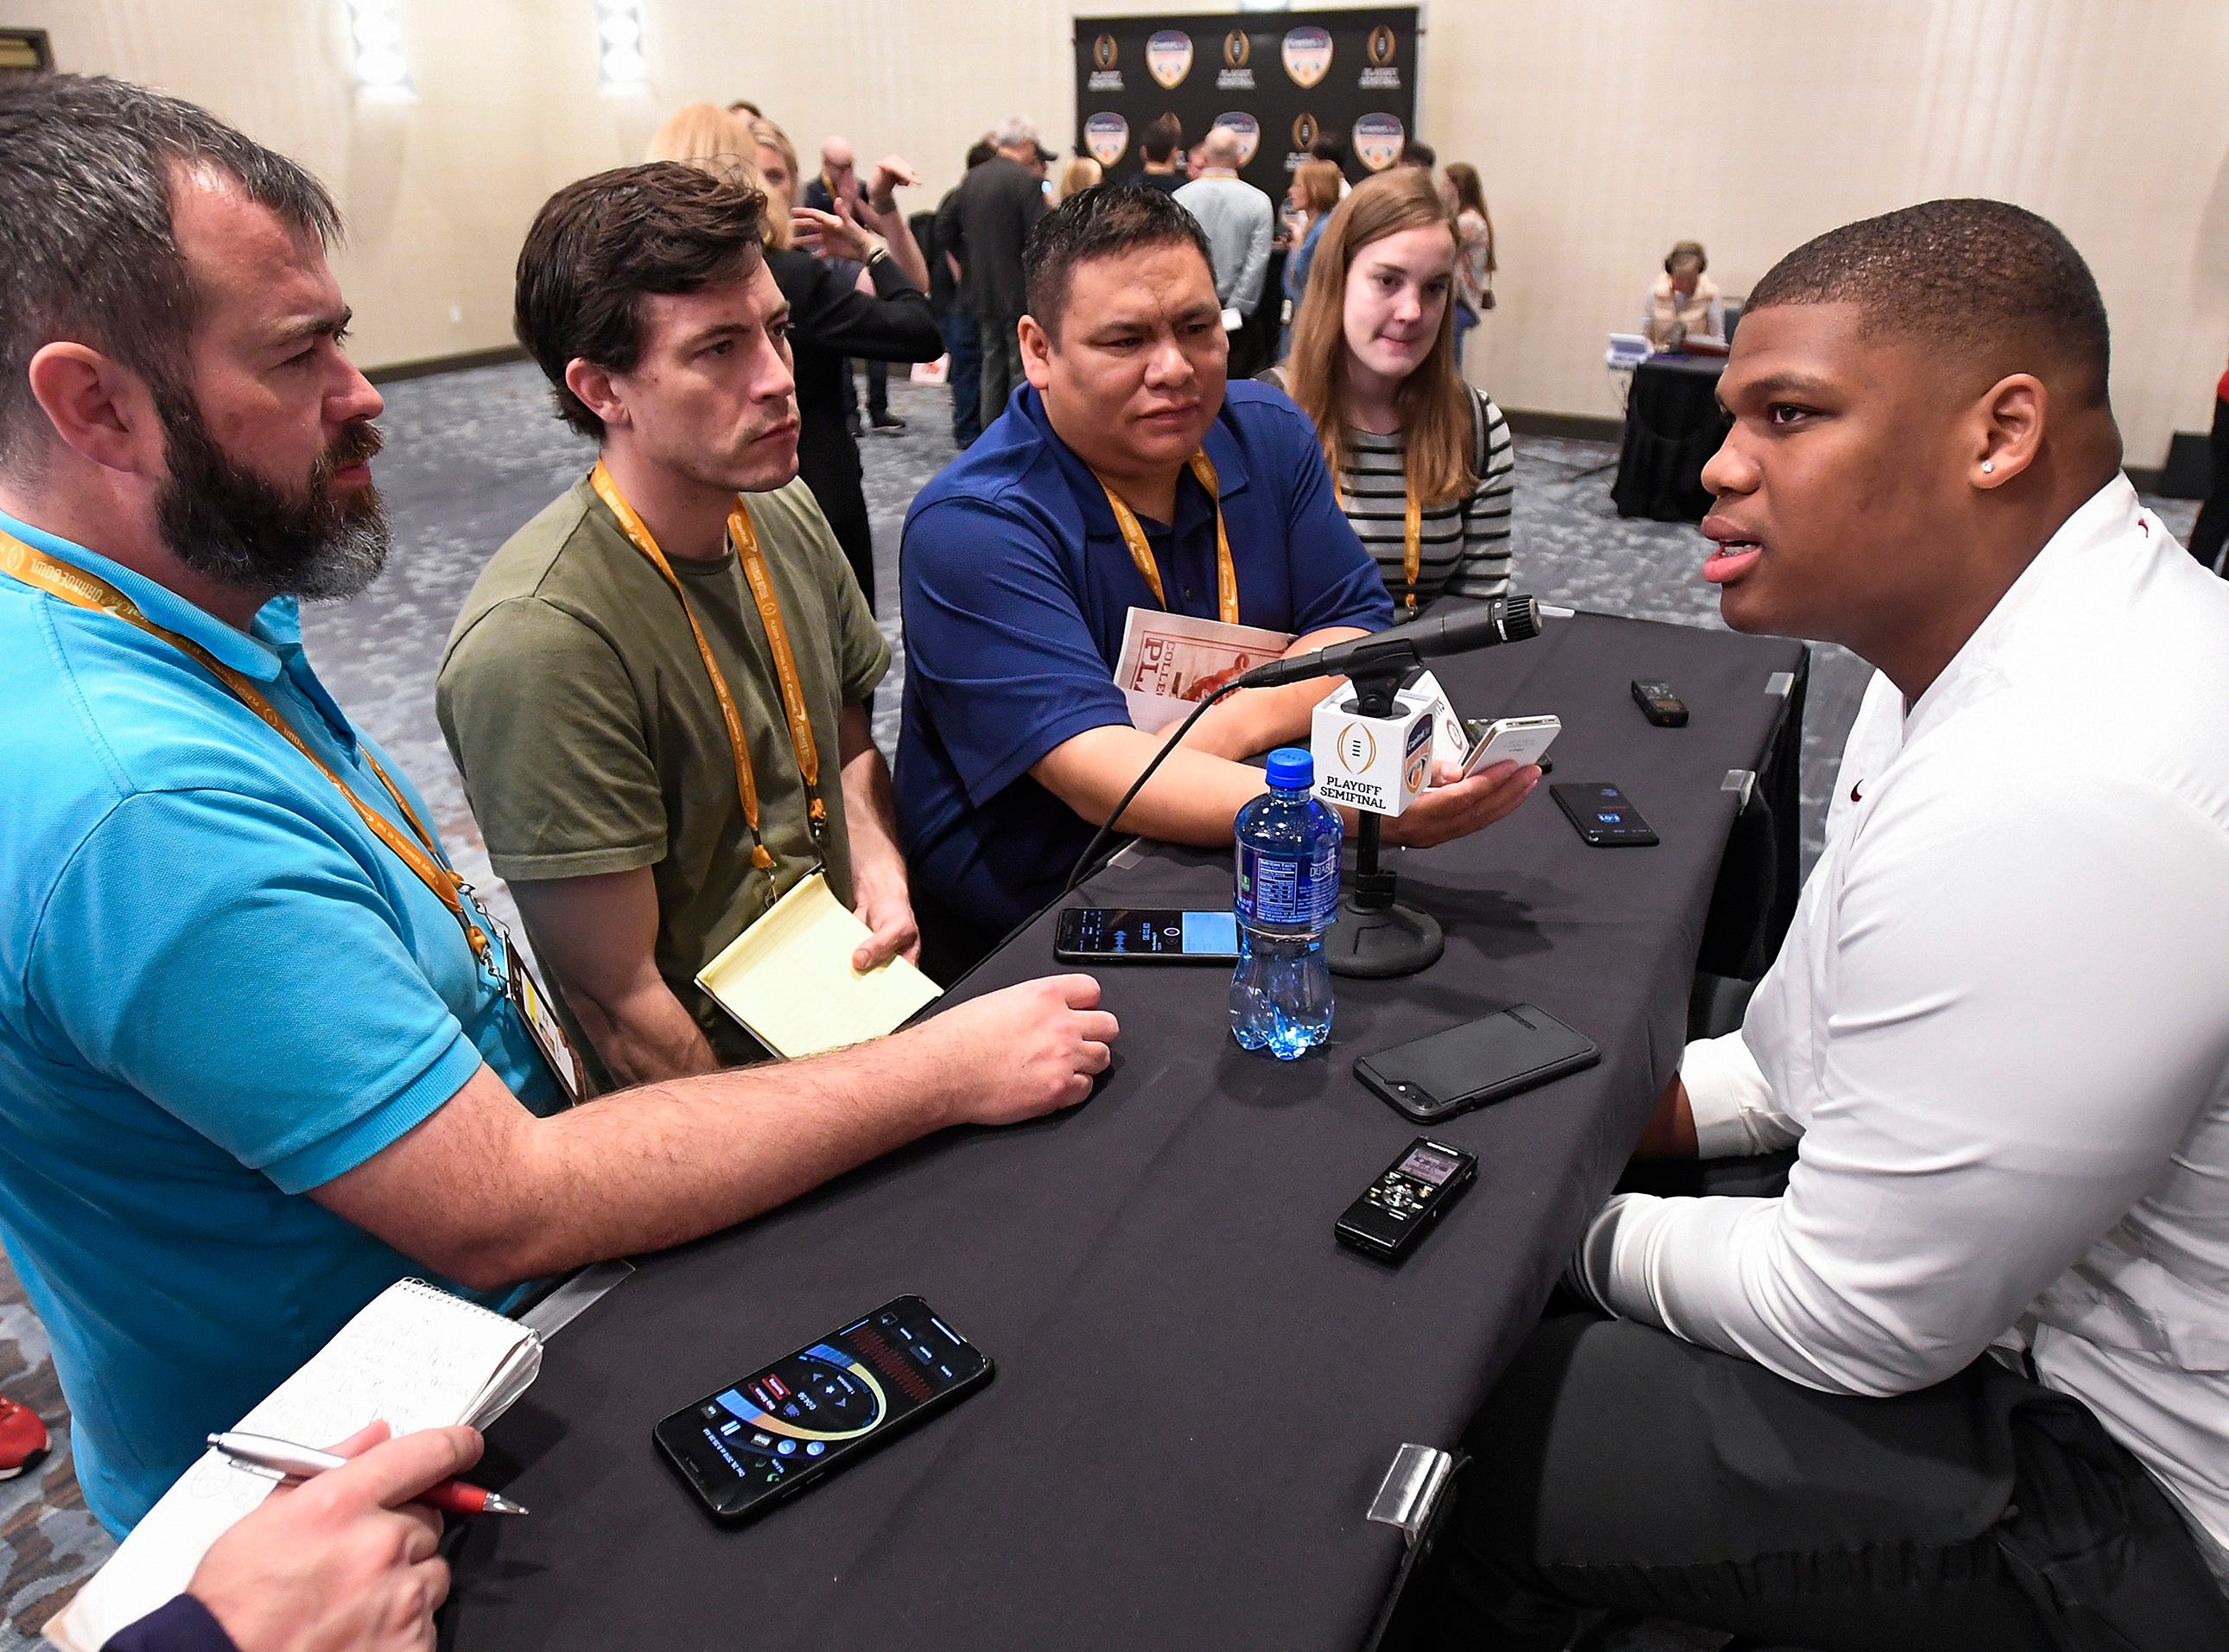 Alabama defensive lineman Quinnen Williams talks with reporters during an Orange Bowl press conference in Fort Lauderdale, Fla., on Wednesday December 26, 2018.